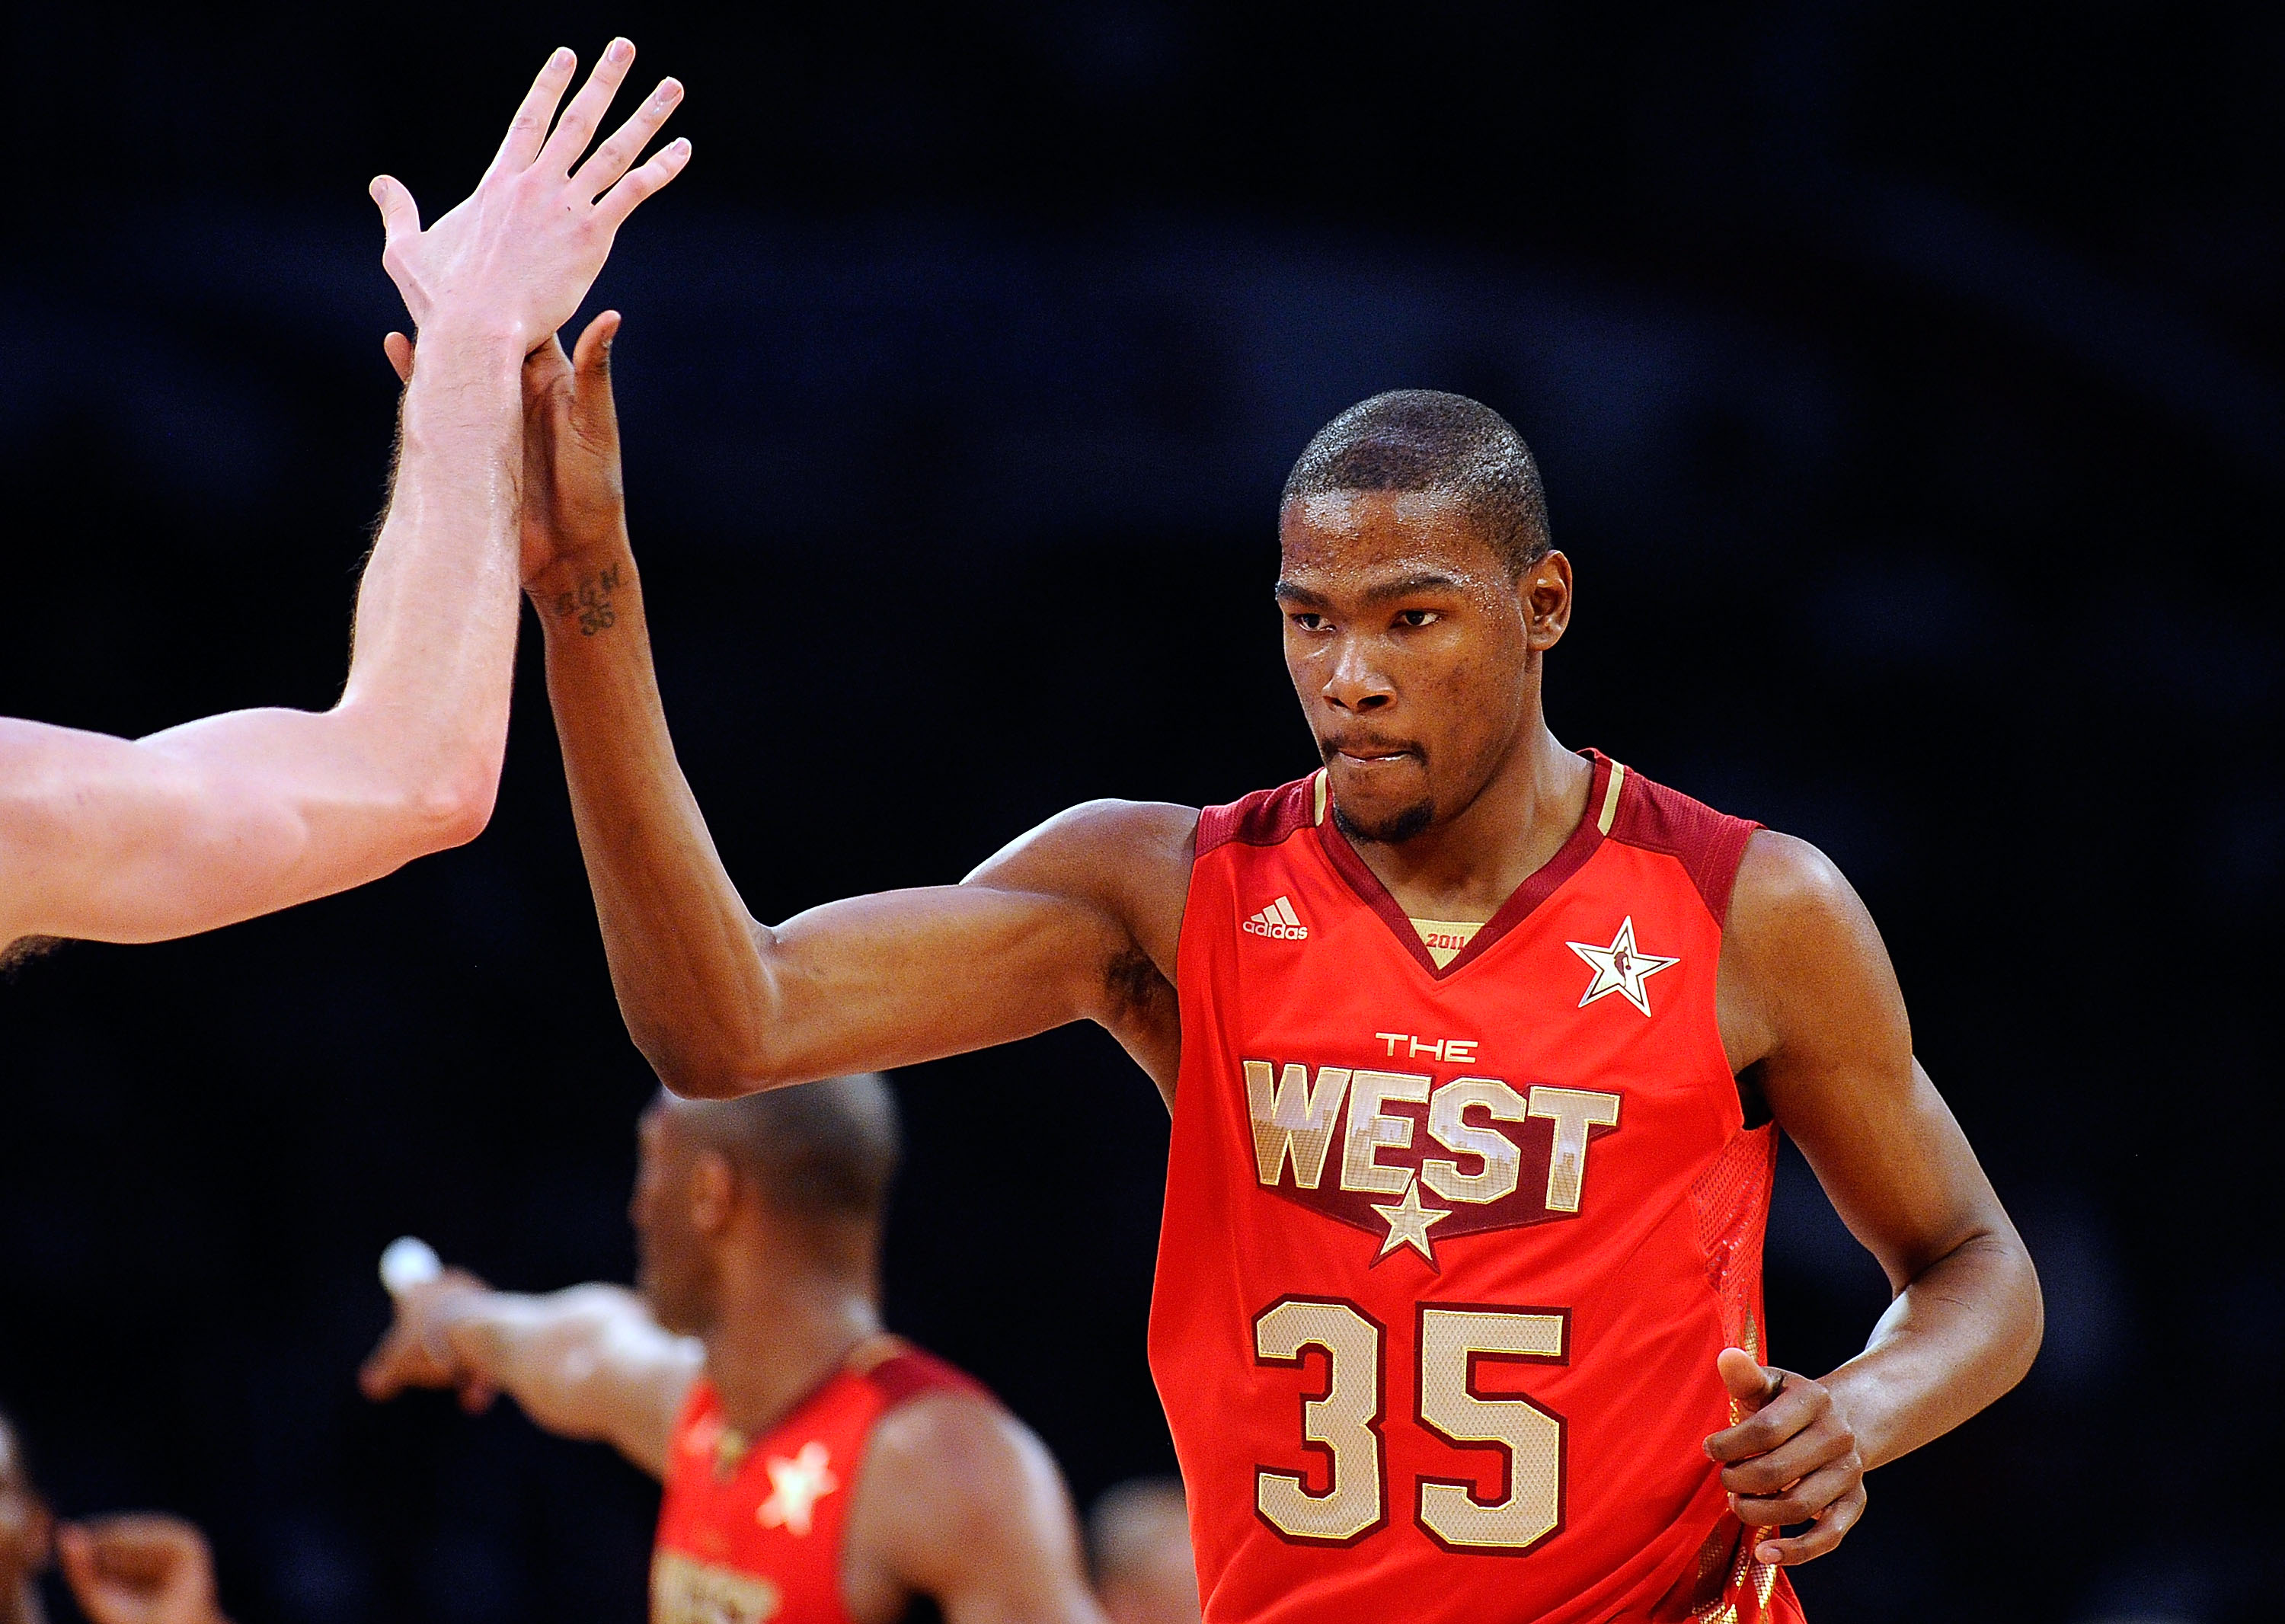 LOS ANGELES, CA - FEBRUARY 20:  Kevin Durant #35 of the Oklahoma City Thunder and the Western Conference reacts in the first half in the 2011 NBA All-Star Game at Staples Center on February 20, 2011 in Los Angeles, California. NOTE TO USER: User expressly